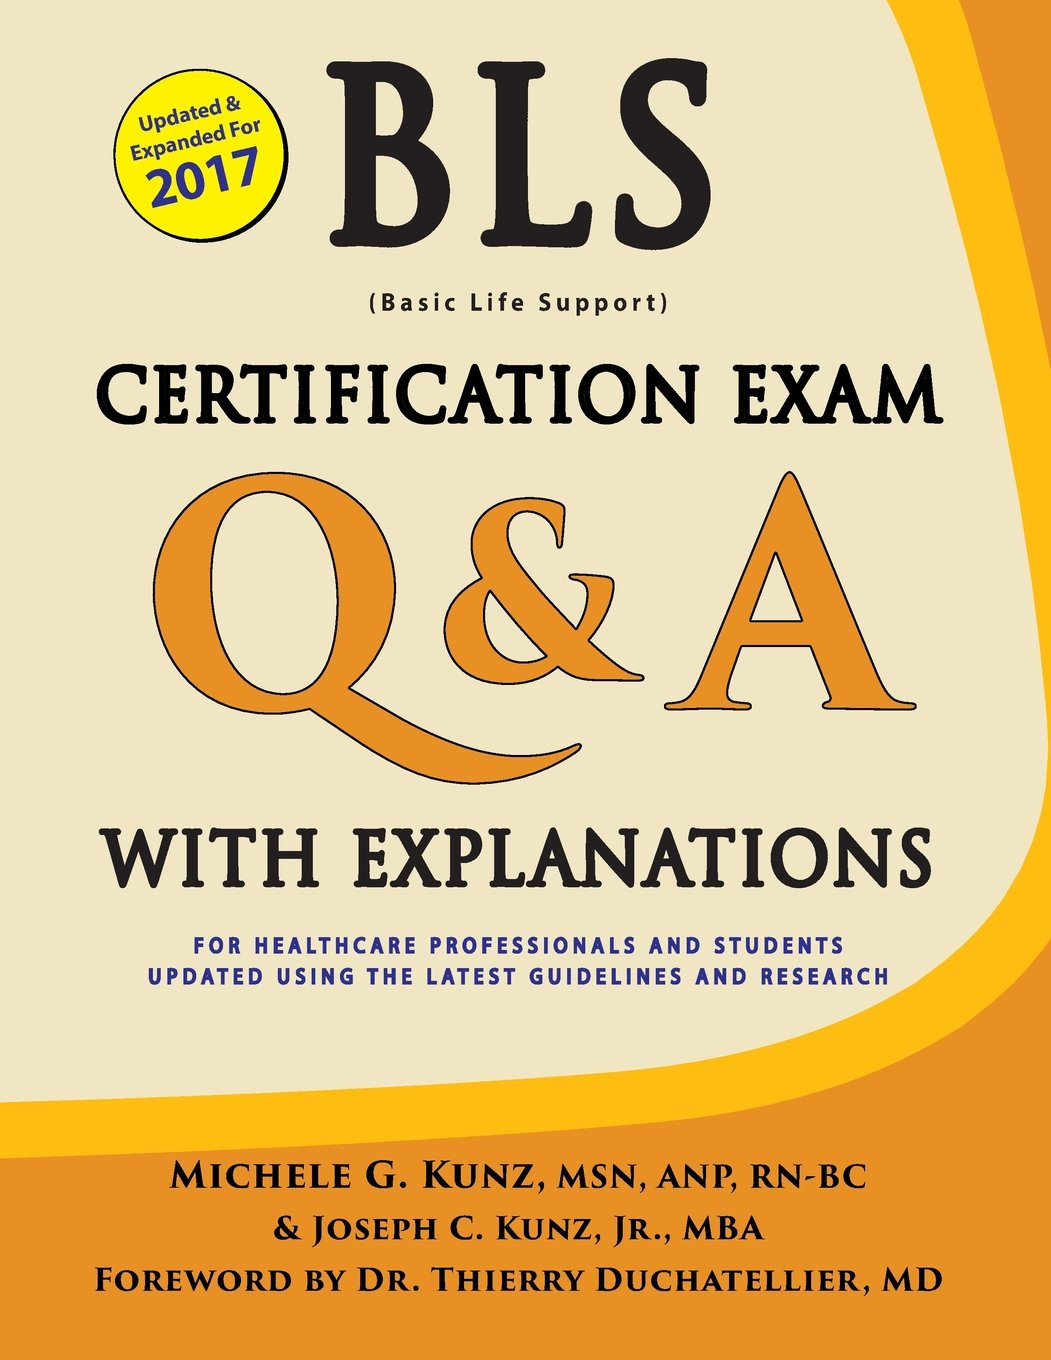 Bls Certification Exam Qa With Explanations Michele G Kunz Joseph